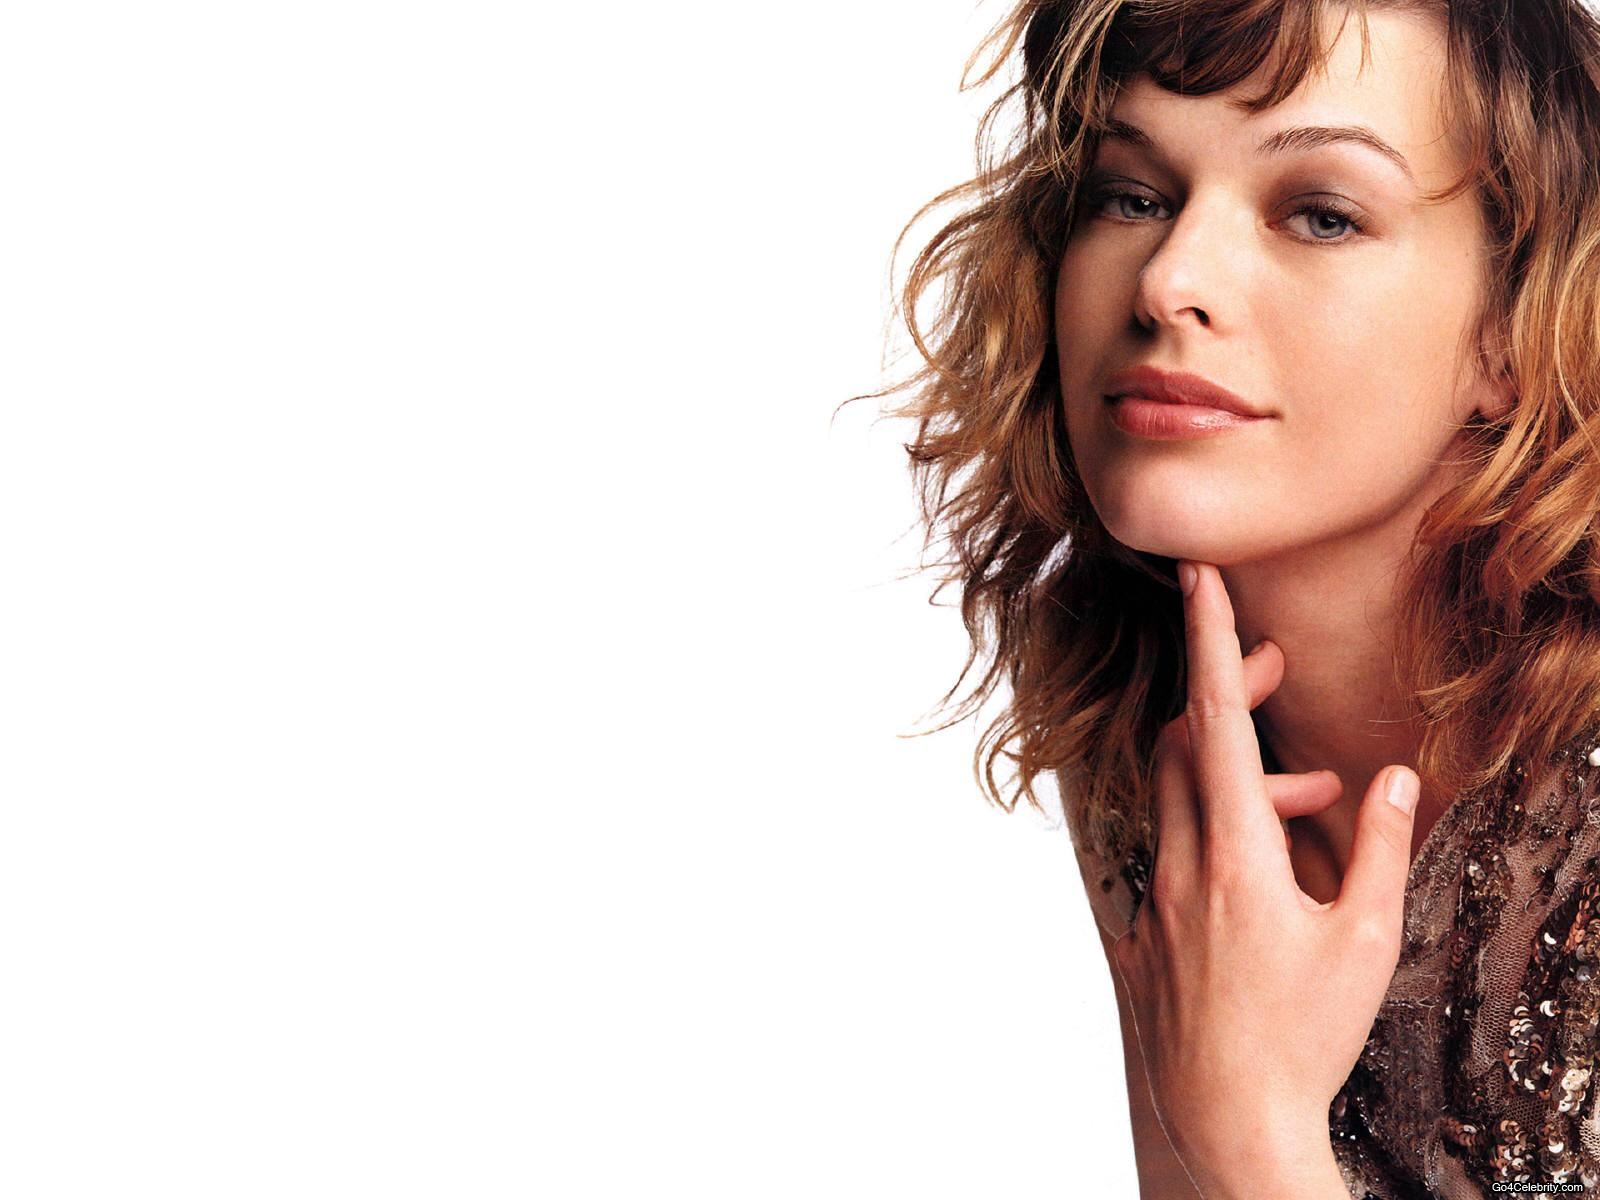 Milla Jovovich Resident Evil Wallpapers HD Wallpapers